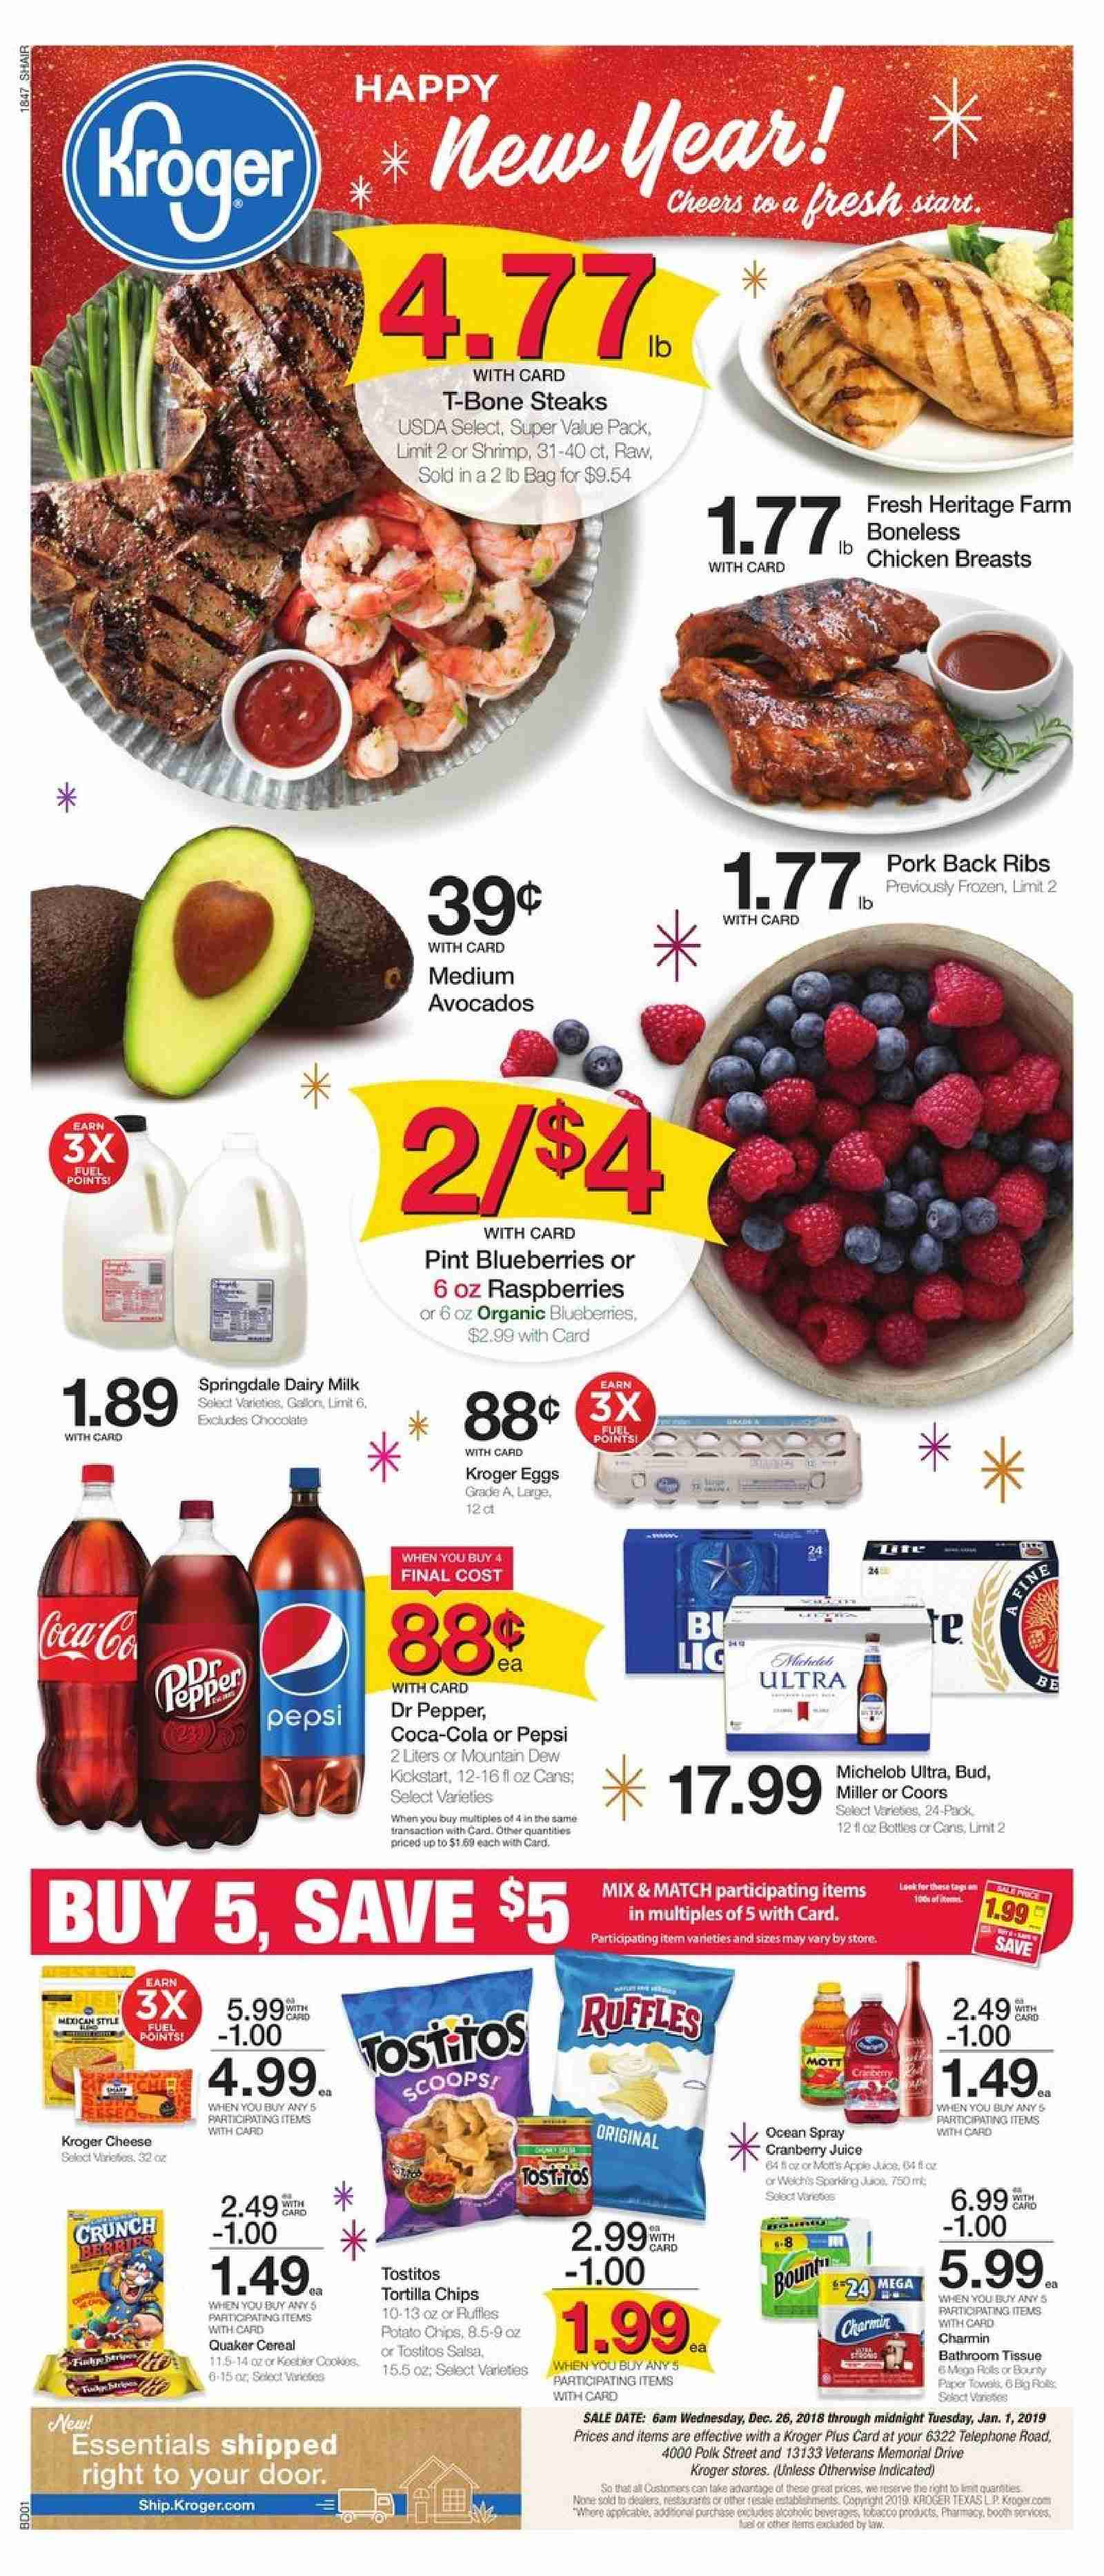 Kroger Flyer - 12.26.2018 - 01.01.2019 - Sales products - avocado, bag, bathroom, blueberries, cereals, coca-cola, door, frozen, milk, mountain dew, raspberries, shrimp, spray, t-bone steak, tortilla chips, towel, polk, pork meat, potato chips, chicken, chicken breast, paper towel, pepsi, organic, chips, chocolate, cheese, pepper, salsa, cereal. Page 1.